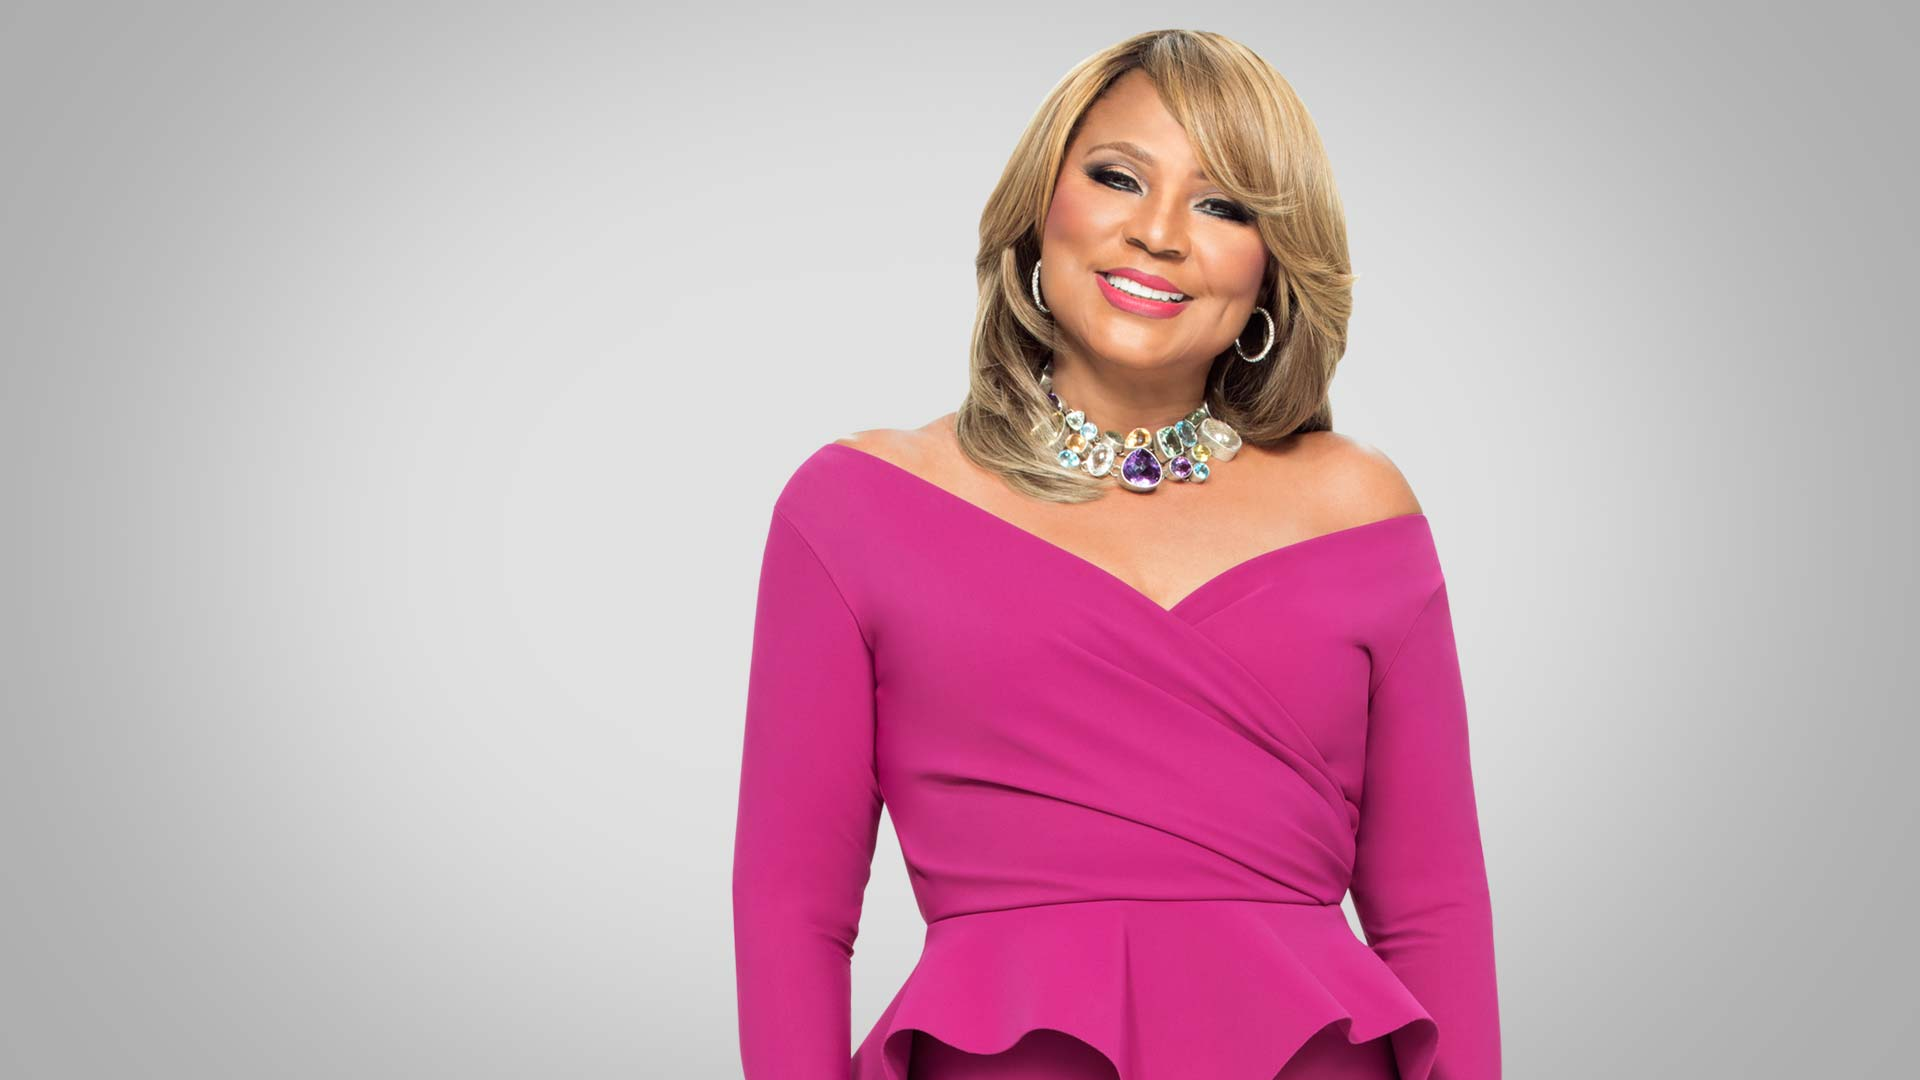 traci-braxtons-video-featuring-her-mom-evelyn-braxton-will-make-your-day